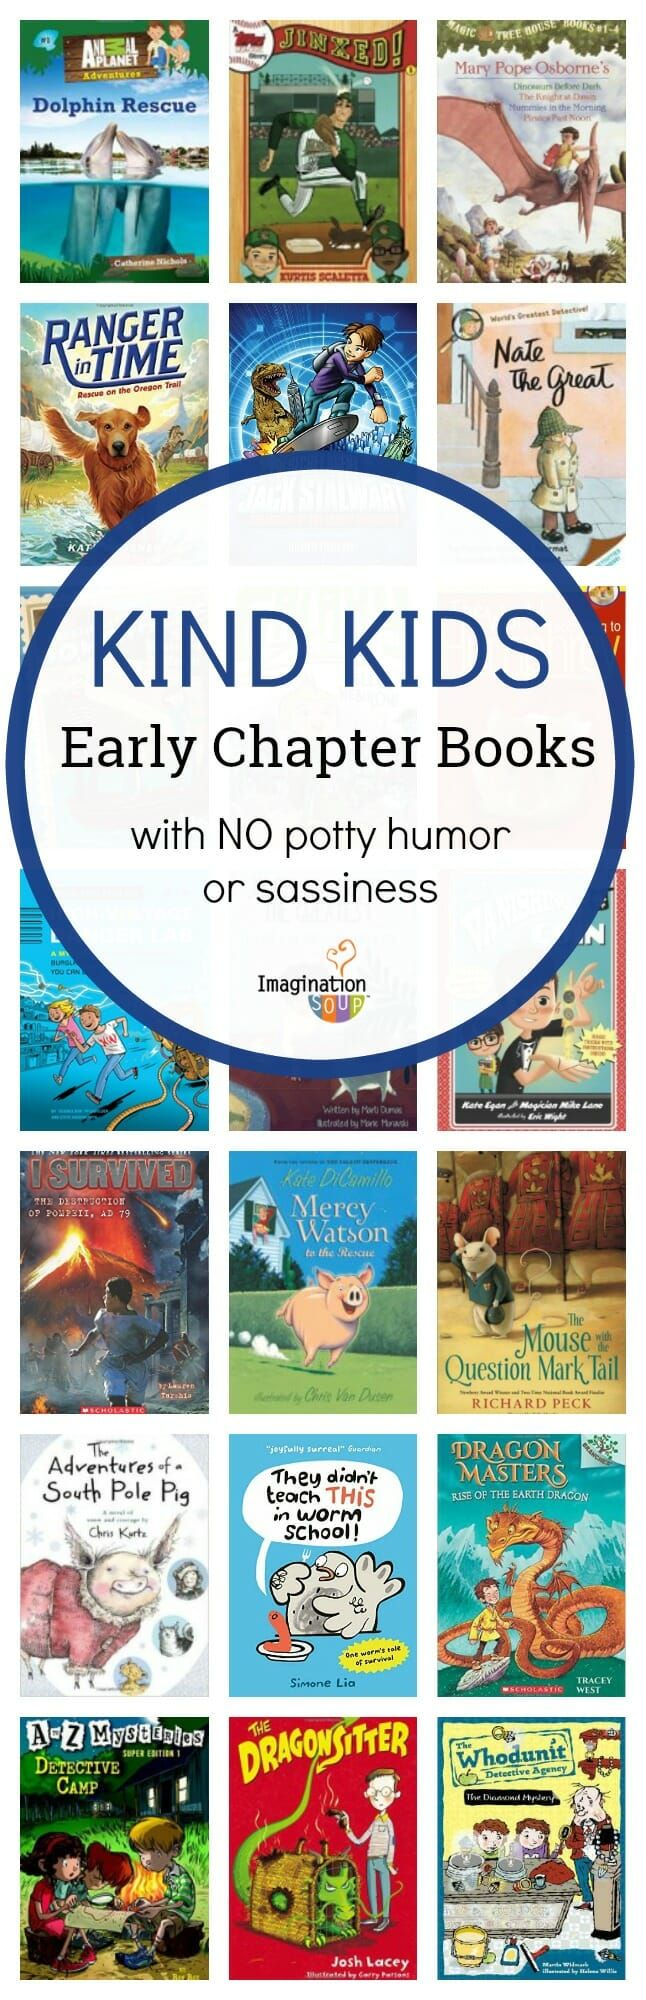 A Nice Kids Early Chapter Book List for Boys (Without Potty Humor or Rudeness)